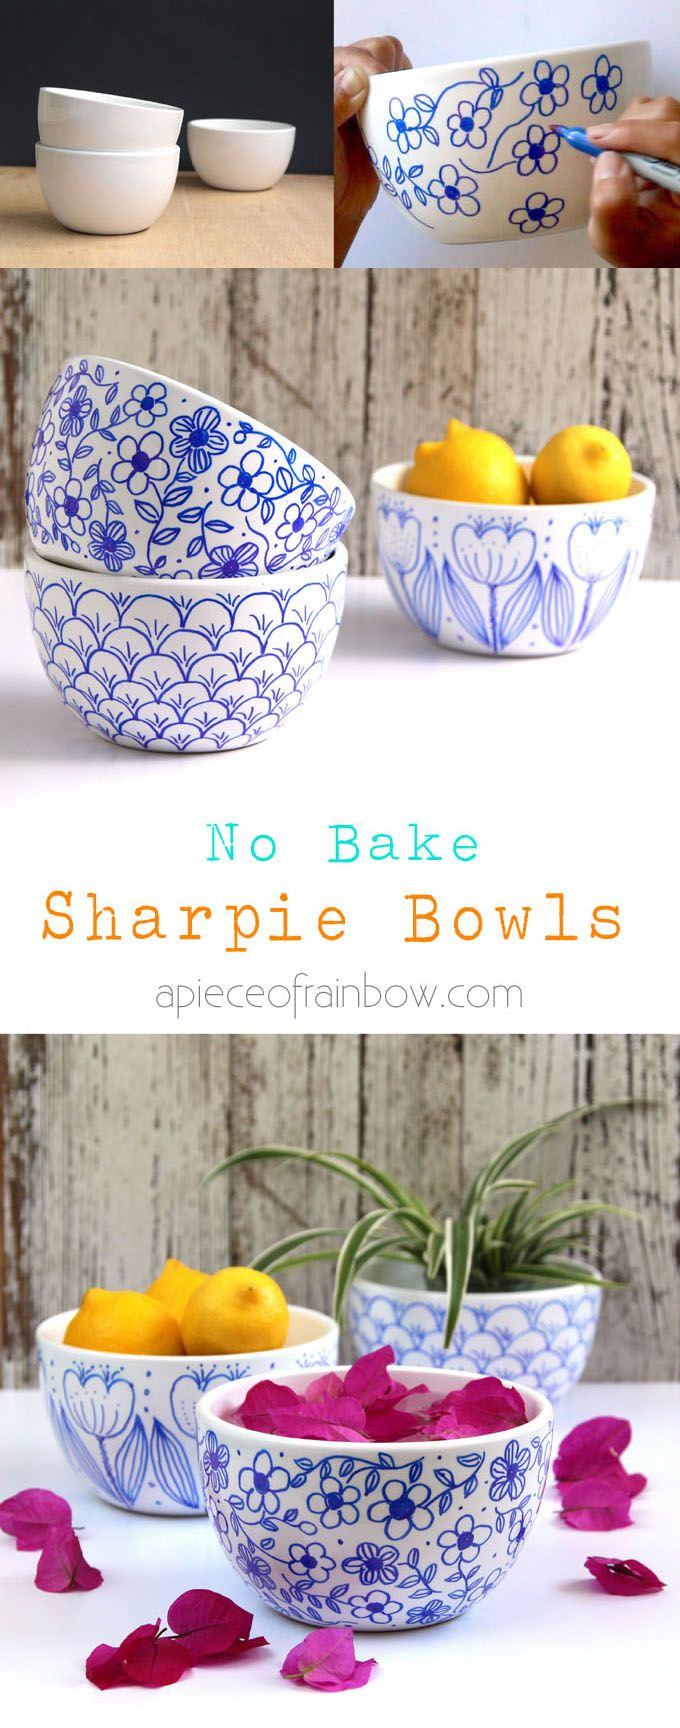 DIY No Bake Sharpie Art Bowls: Create beautiful hand drawn designs on white bowls or mugs using a Sharpie marker. Detailed video tutorials! No bake, try this better finishing method! - A Piece Of Rainbow